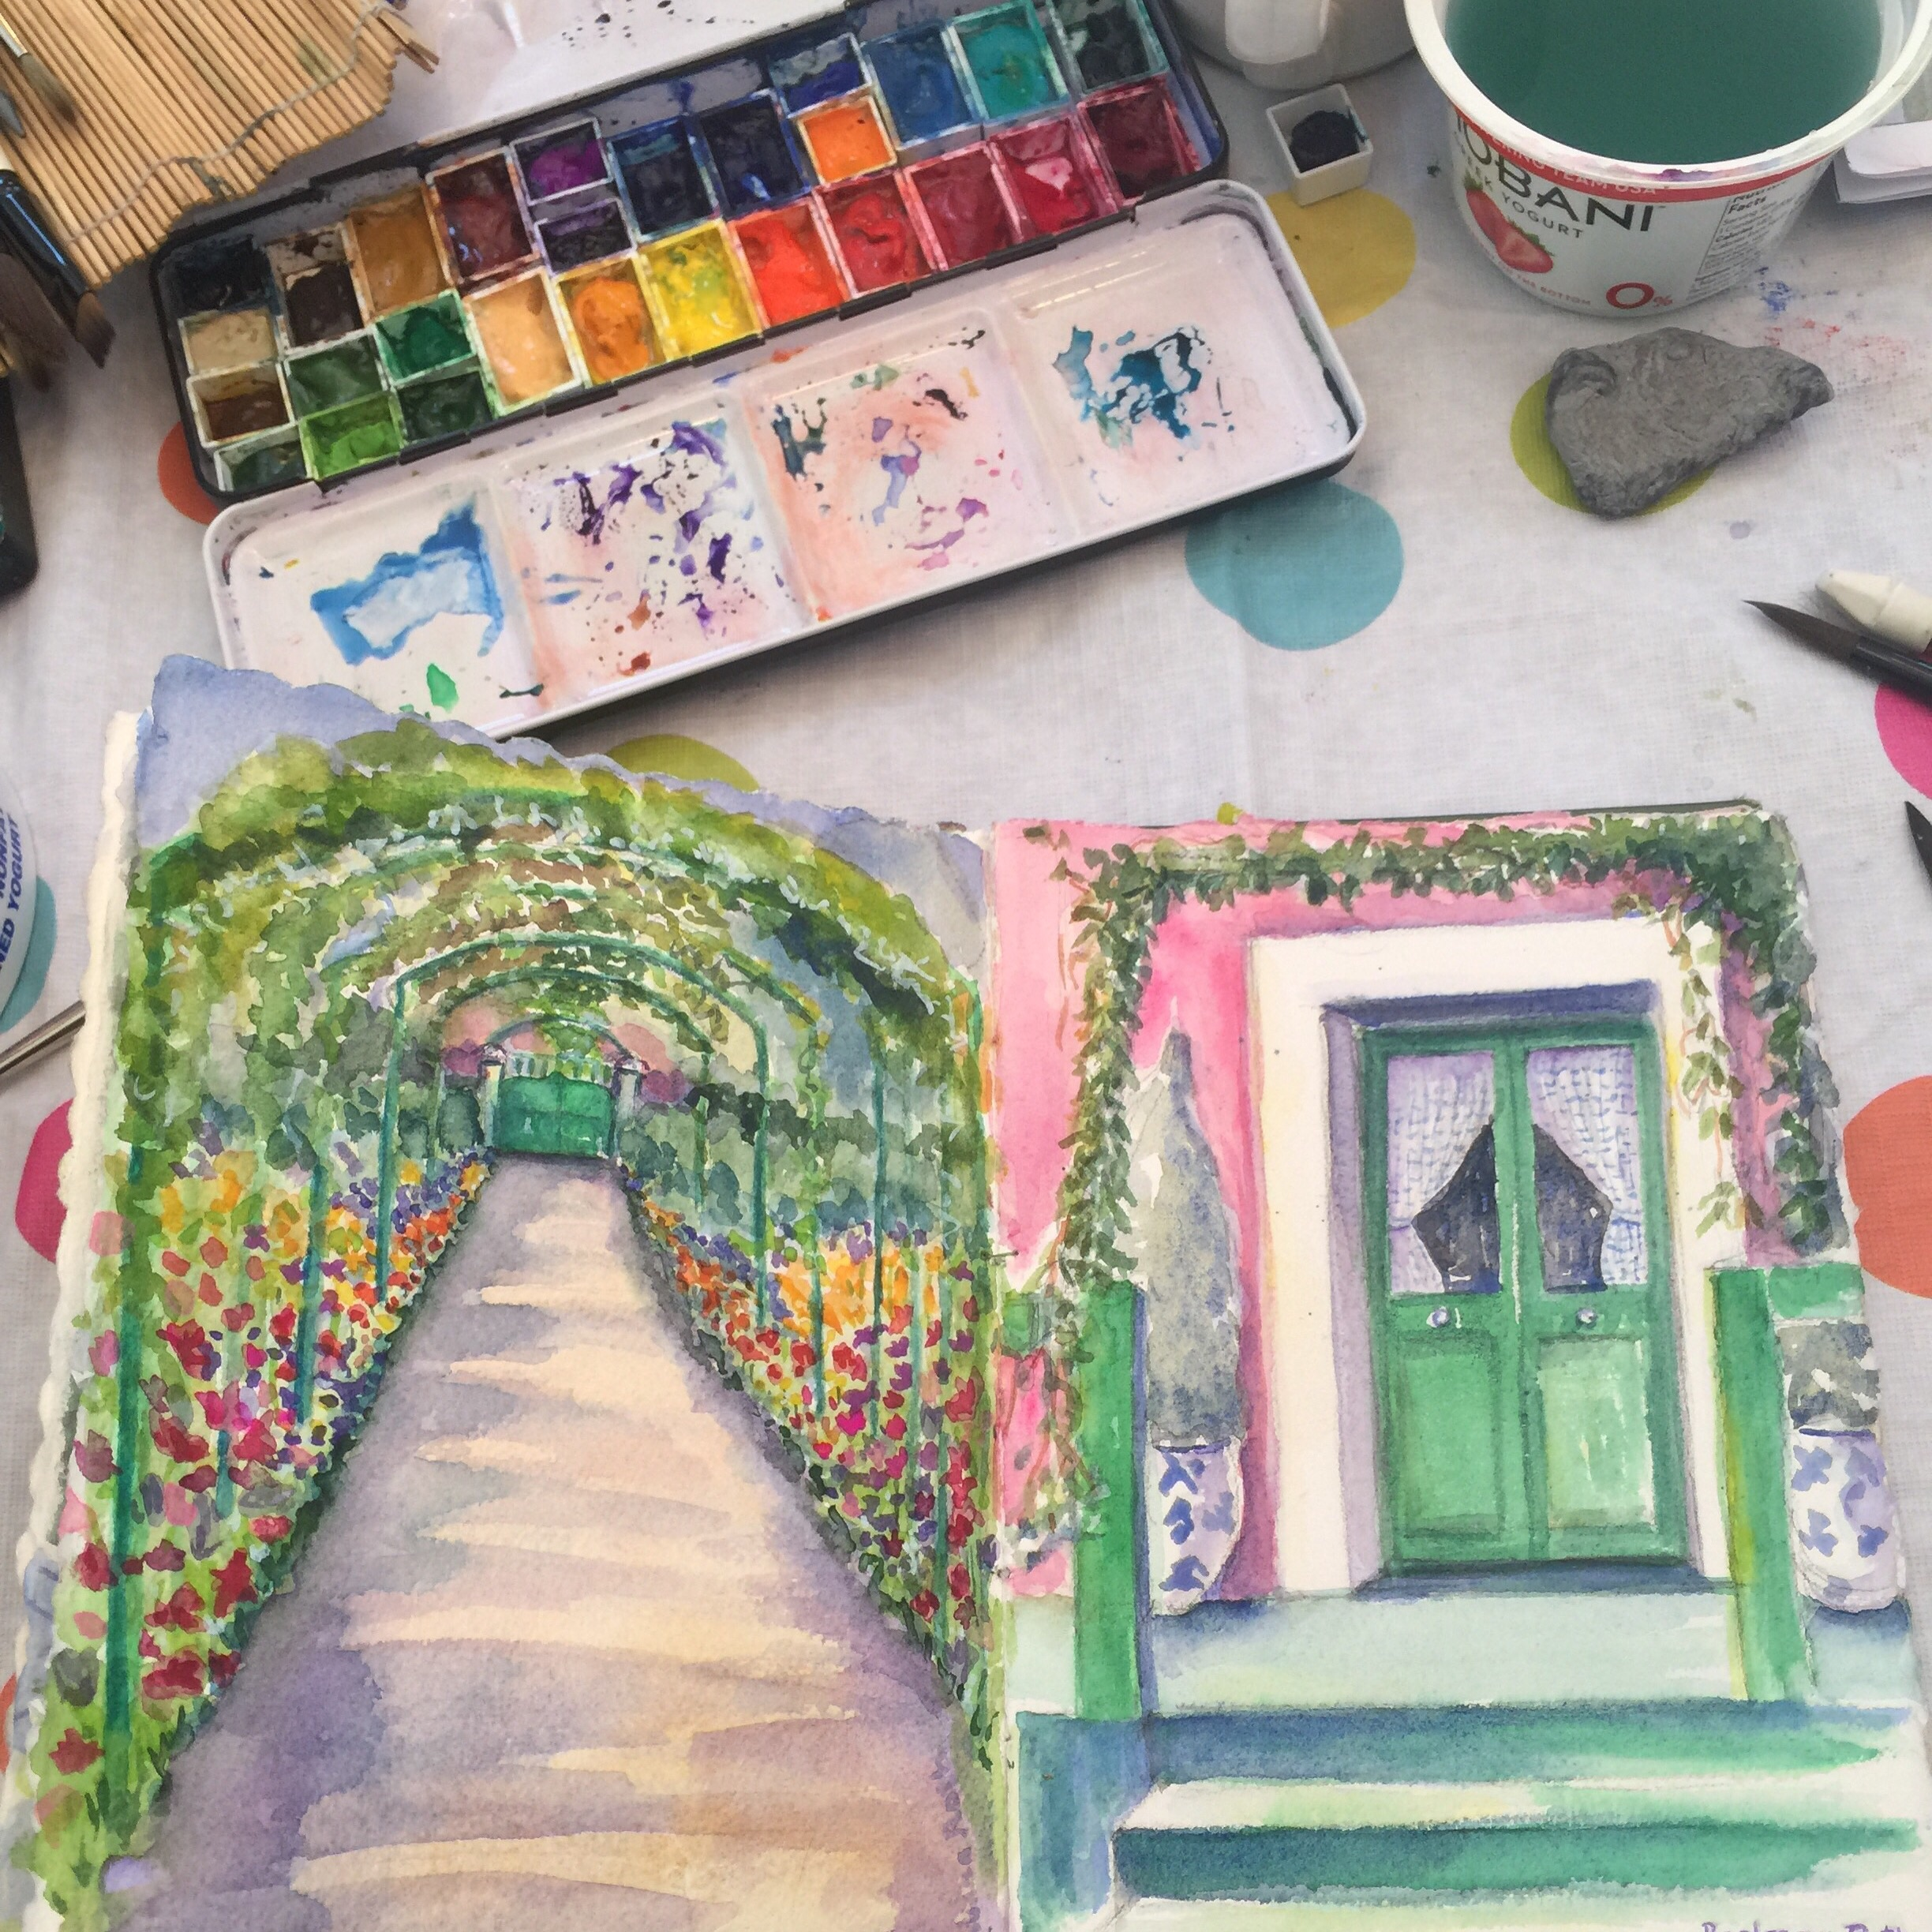 Paintings from Monet's Garden that I am working on today.